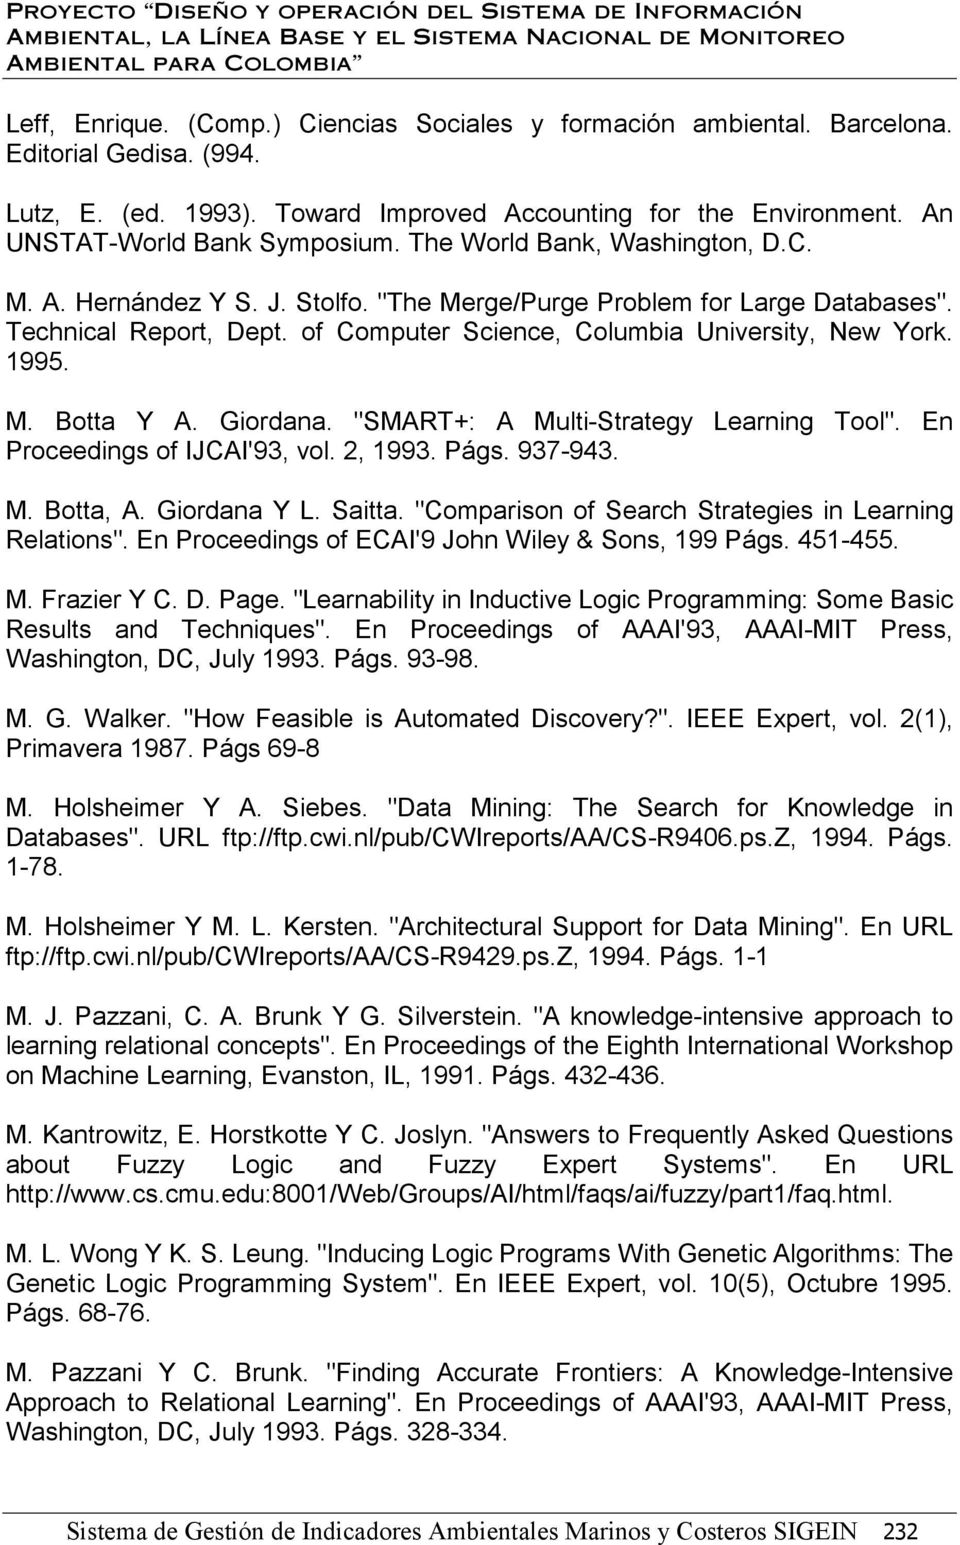 "Giordana. ""SMART+: A Multi-Strategy Learning Tool"". En Proceedings of IJCAI'93, vol. 2, 1993. Págs. 937-943. M. Botta, A. Giordana Y L. Saitta. ""Comparison of Search Strategies in Learning Relations""."